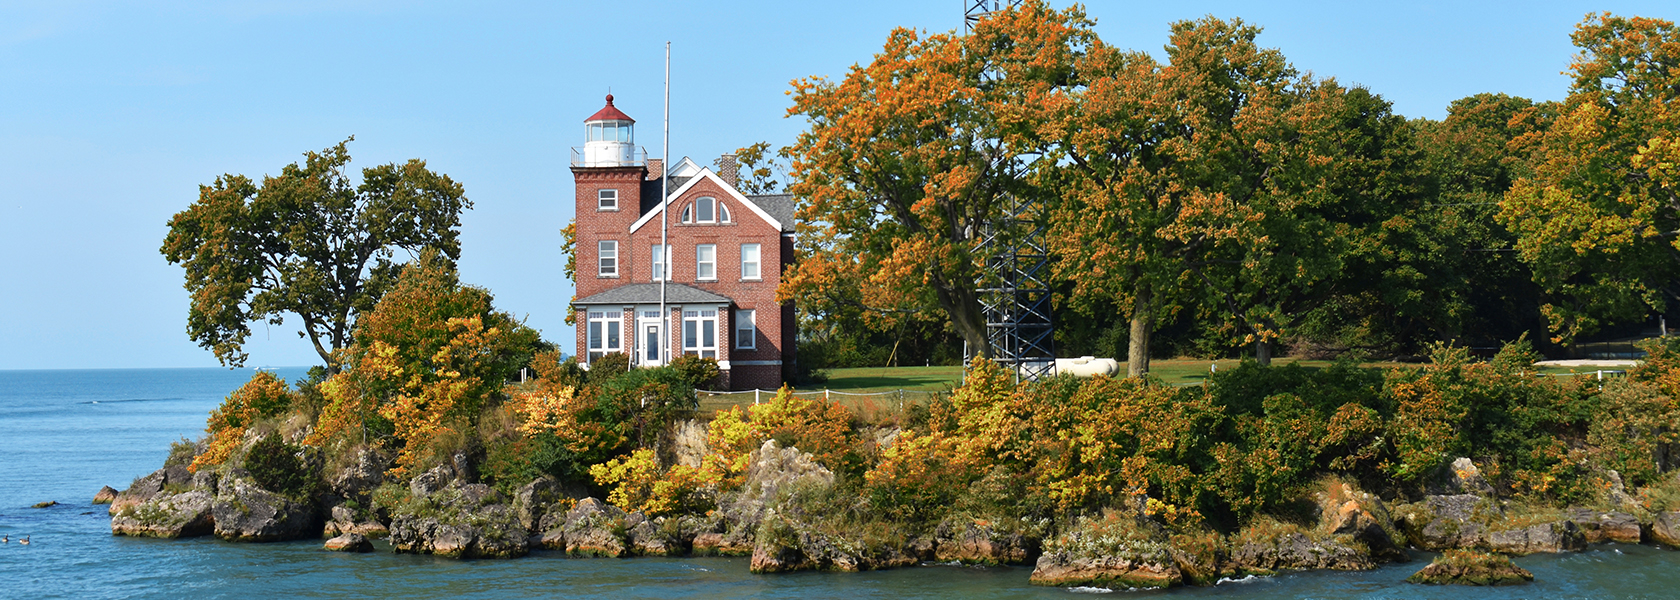 South Bass Island Lighthouse